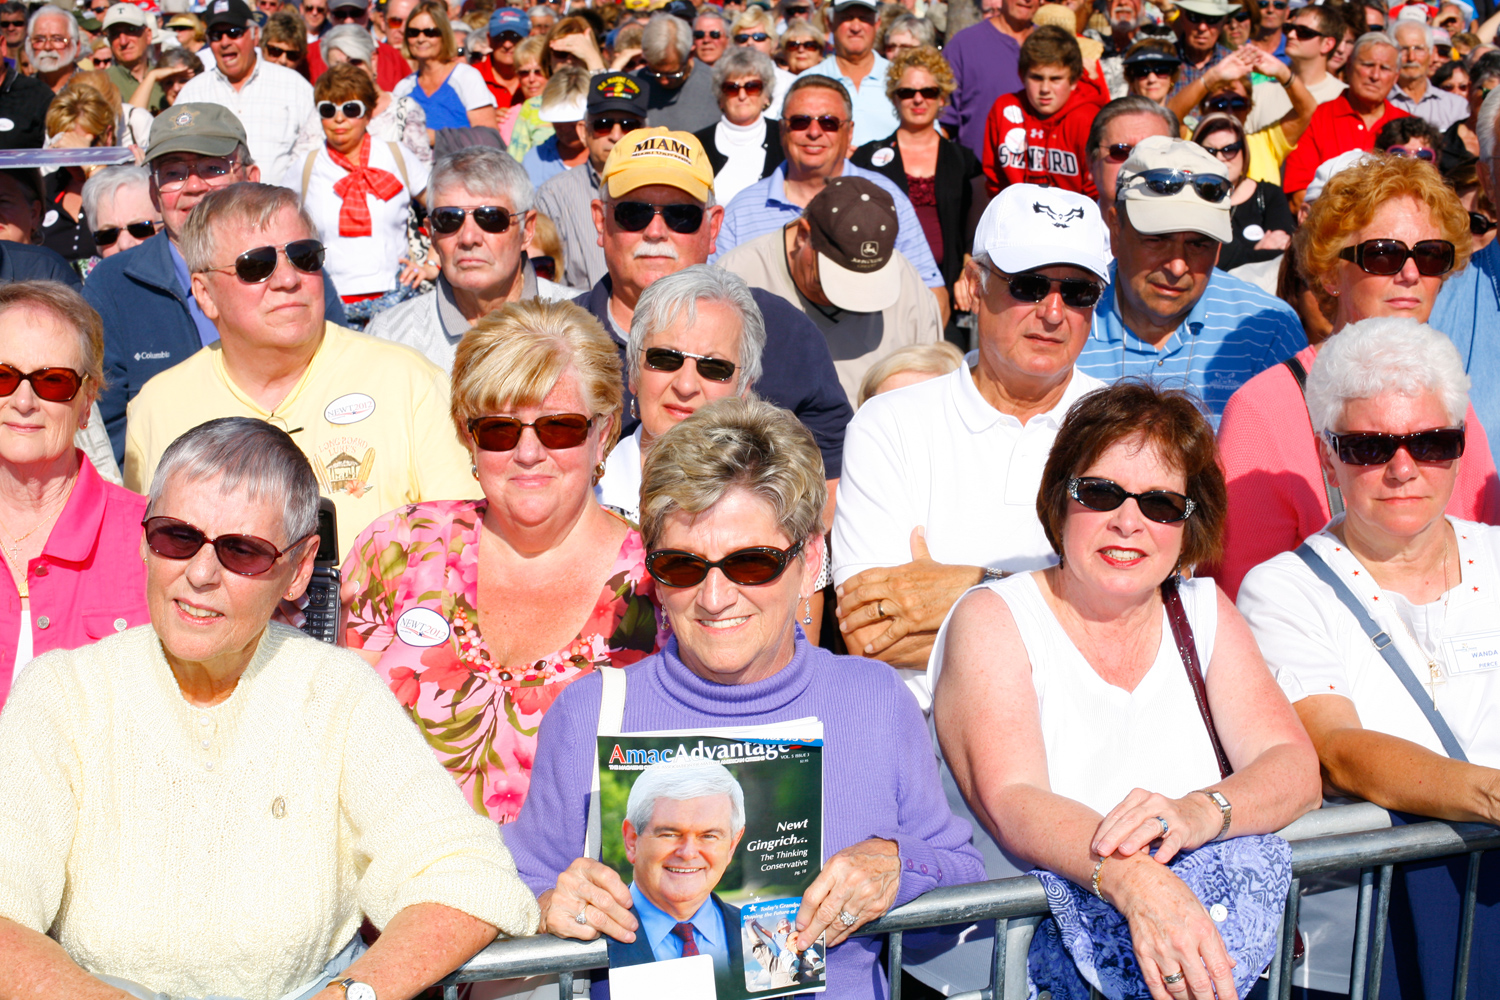 Attendees of a Gingrich rally at The Villages, Fla., January 29, 2012.